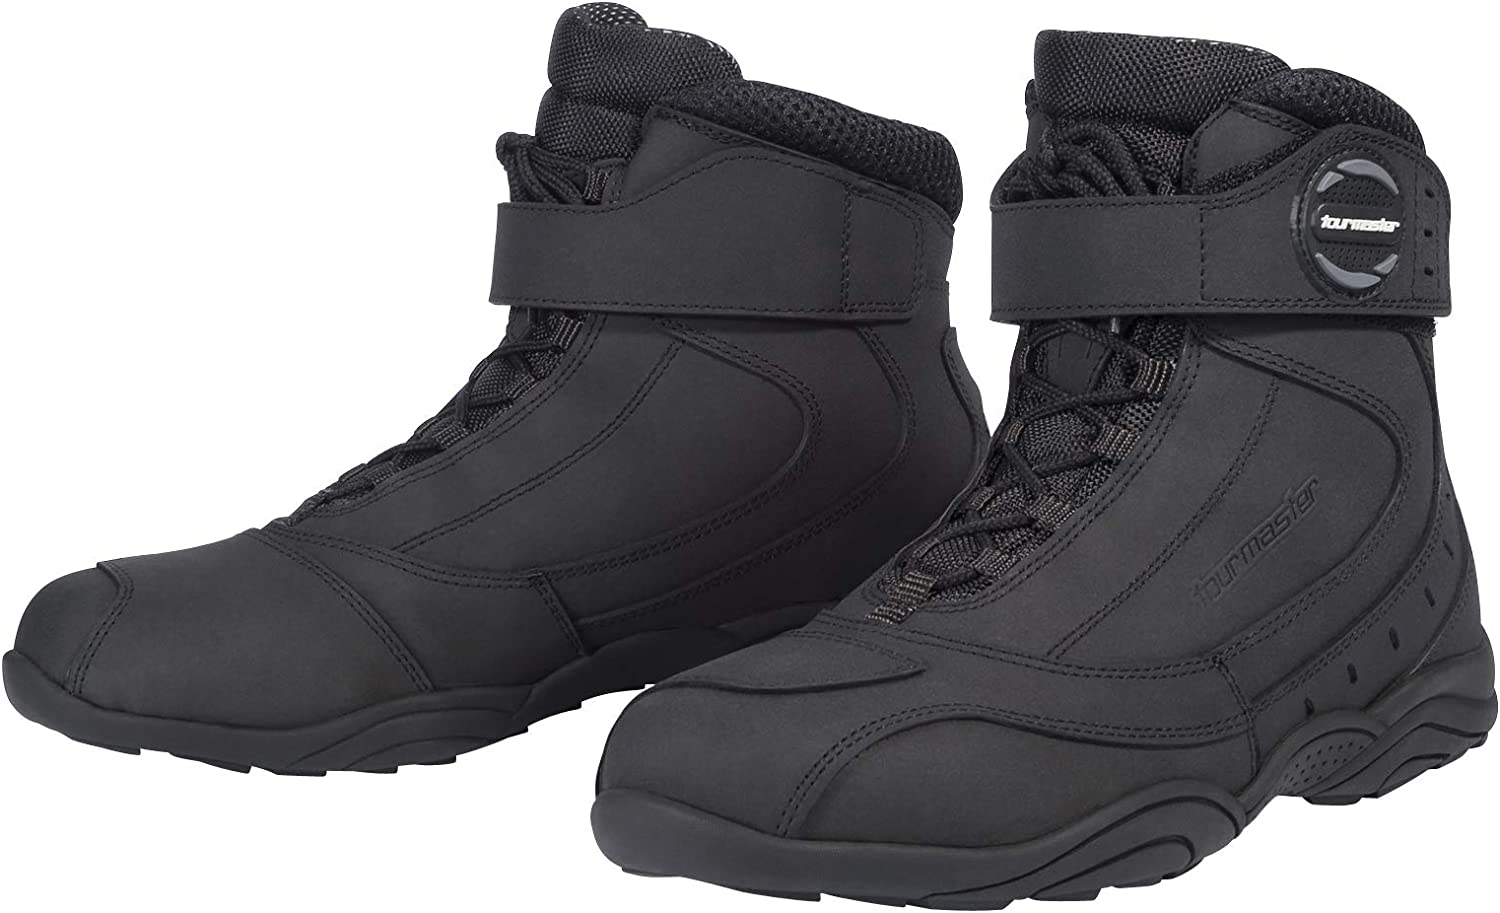 Tourmaster Response WP 3.0 Boots